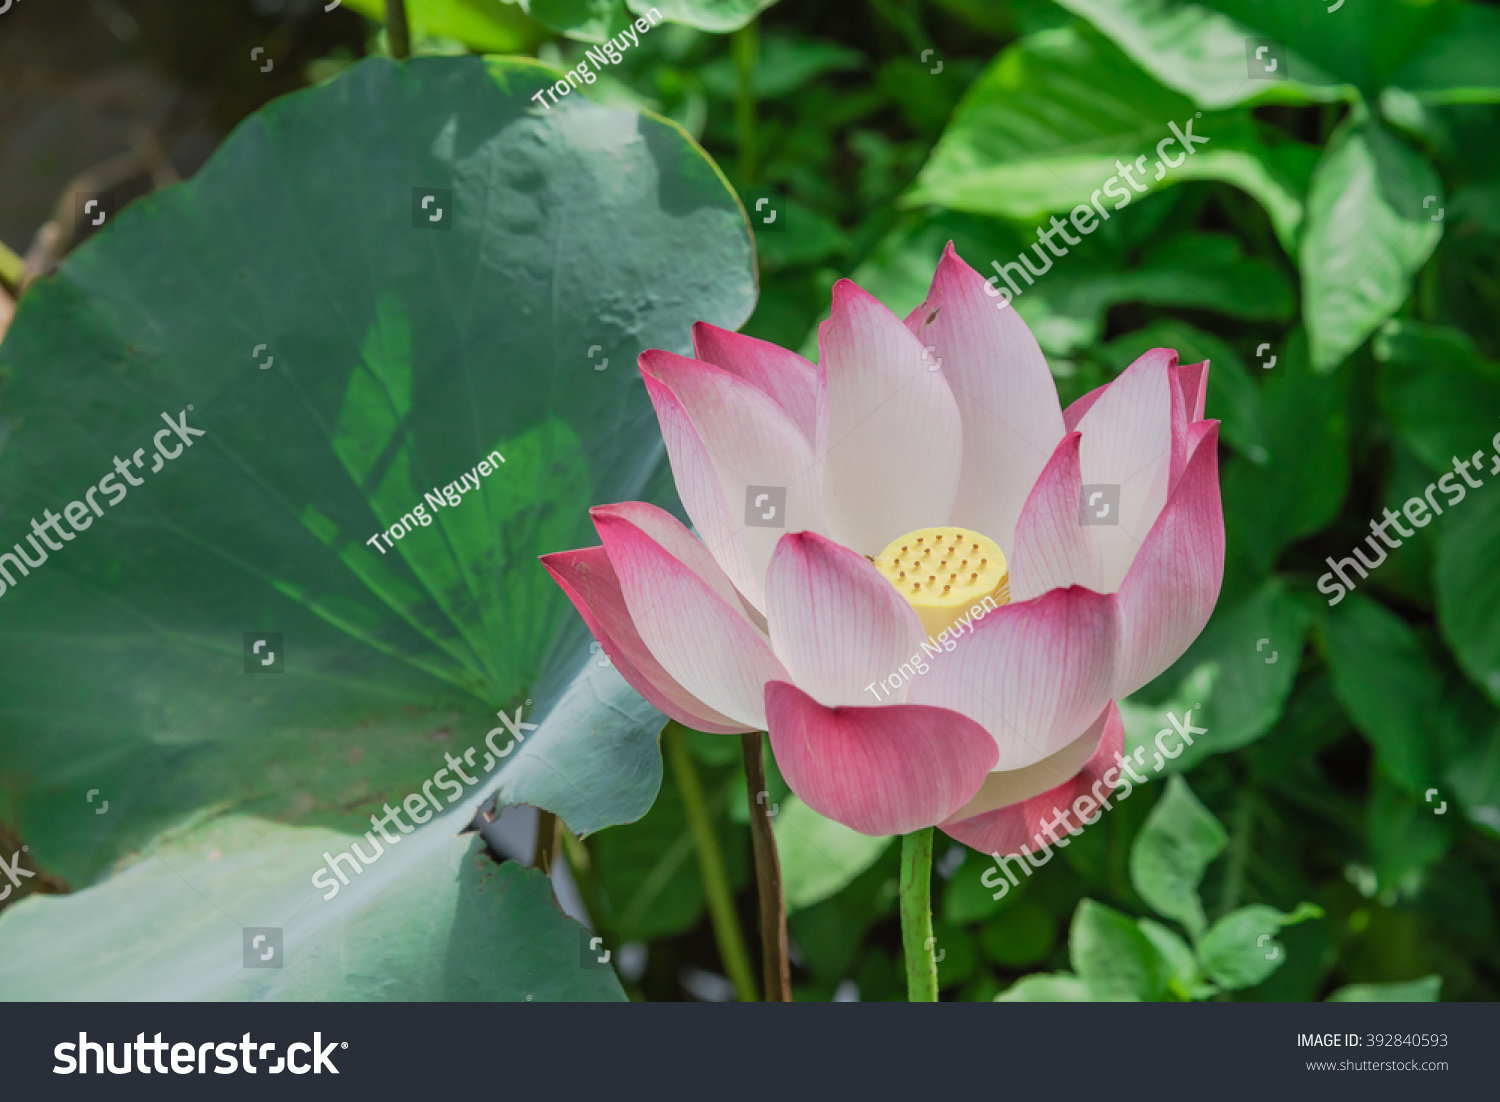 Close up view blooming pink lotus flower or nelumbo nucifera gaertn id 392840593 izmirmasajfo